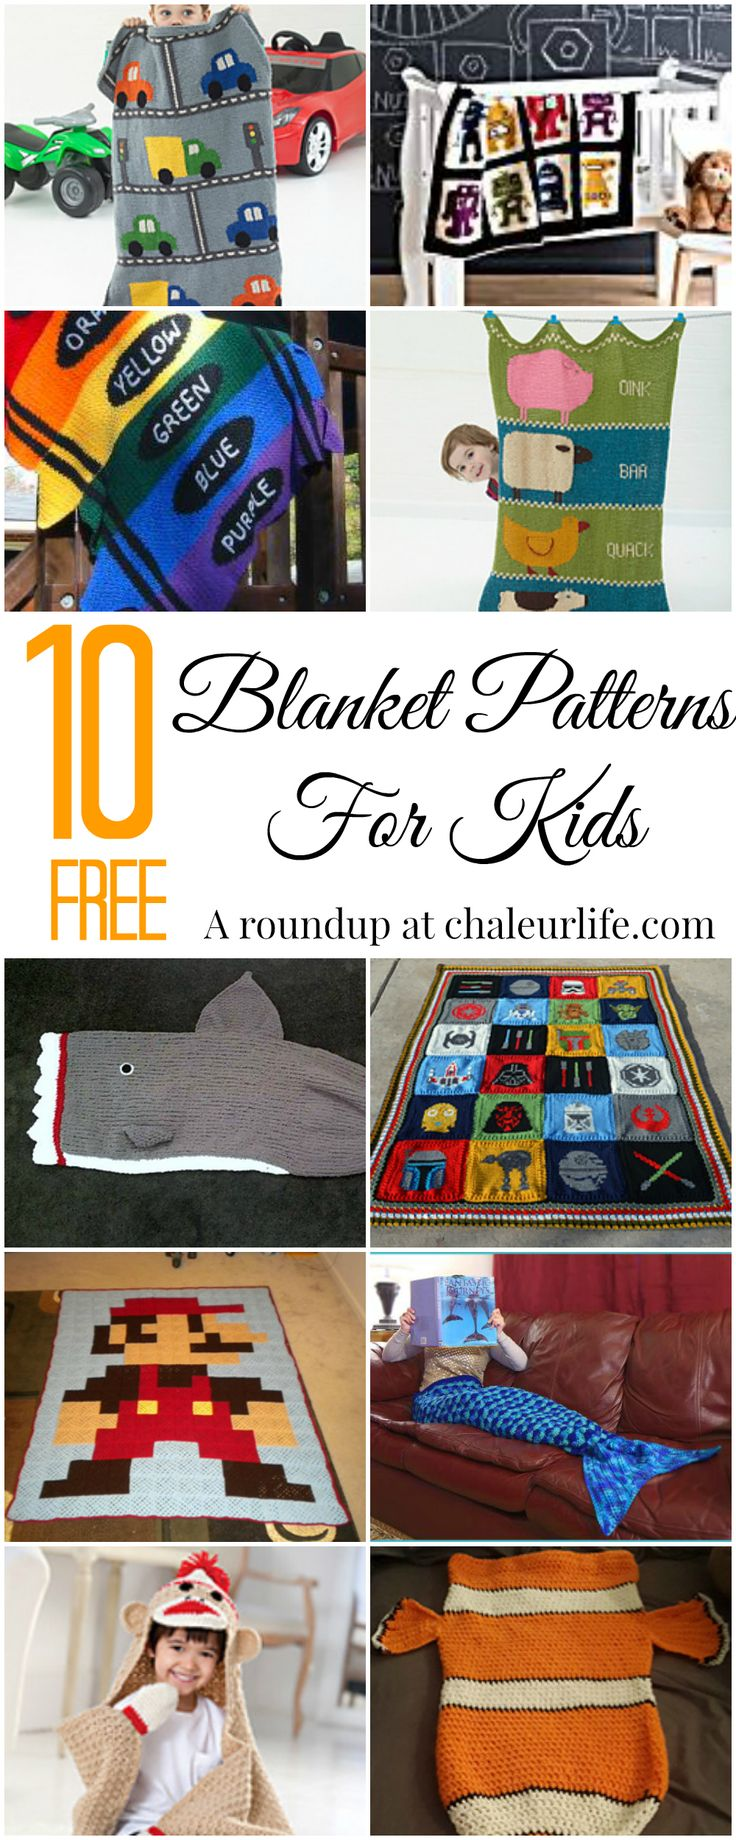 10 Free Blanket Patterns Your Kids Will Love. Looking for a shark blanket? A mermaid tail? Maybe something different? Here is a collection of free patterns you kids will love!